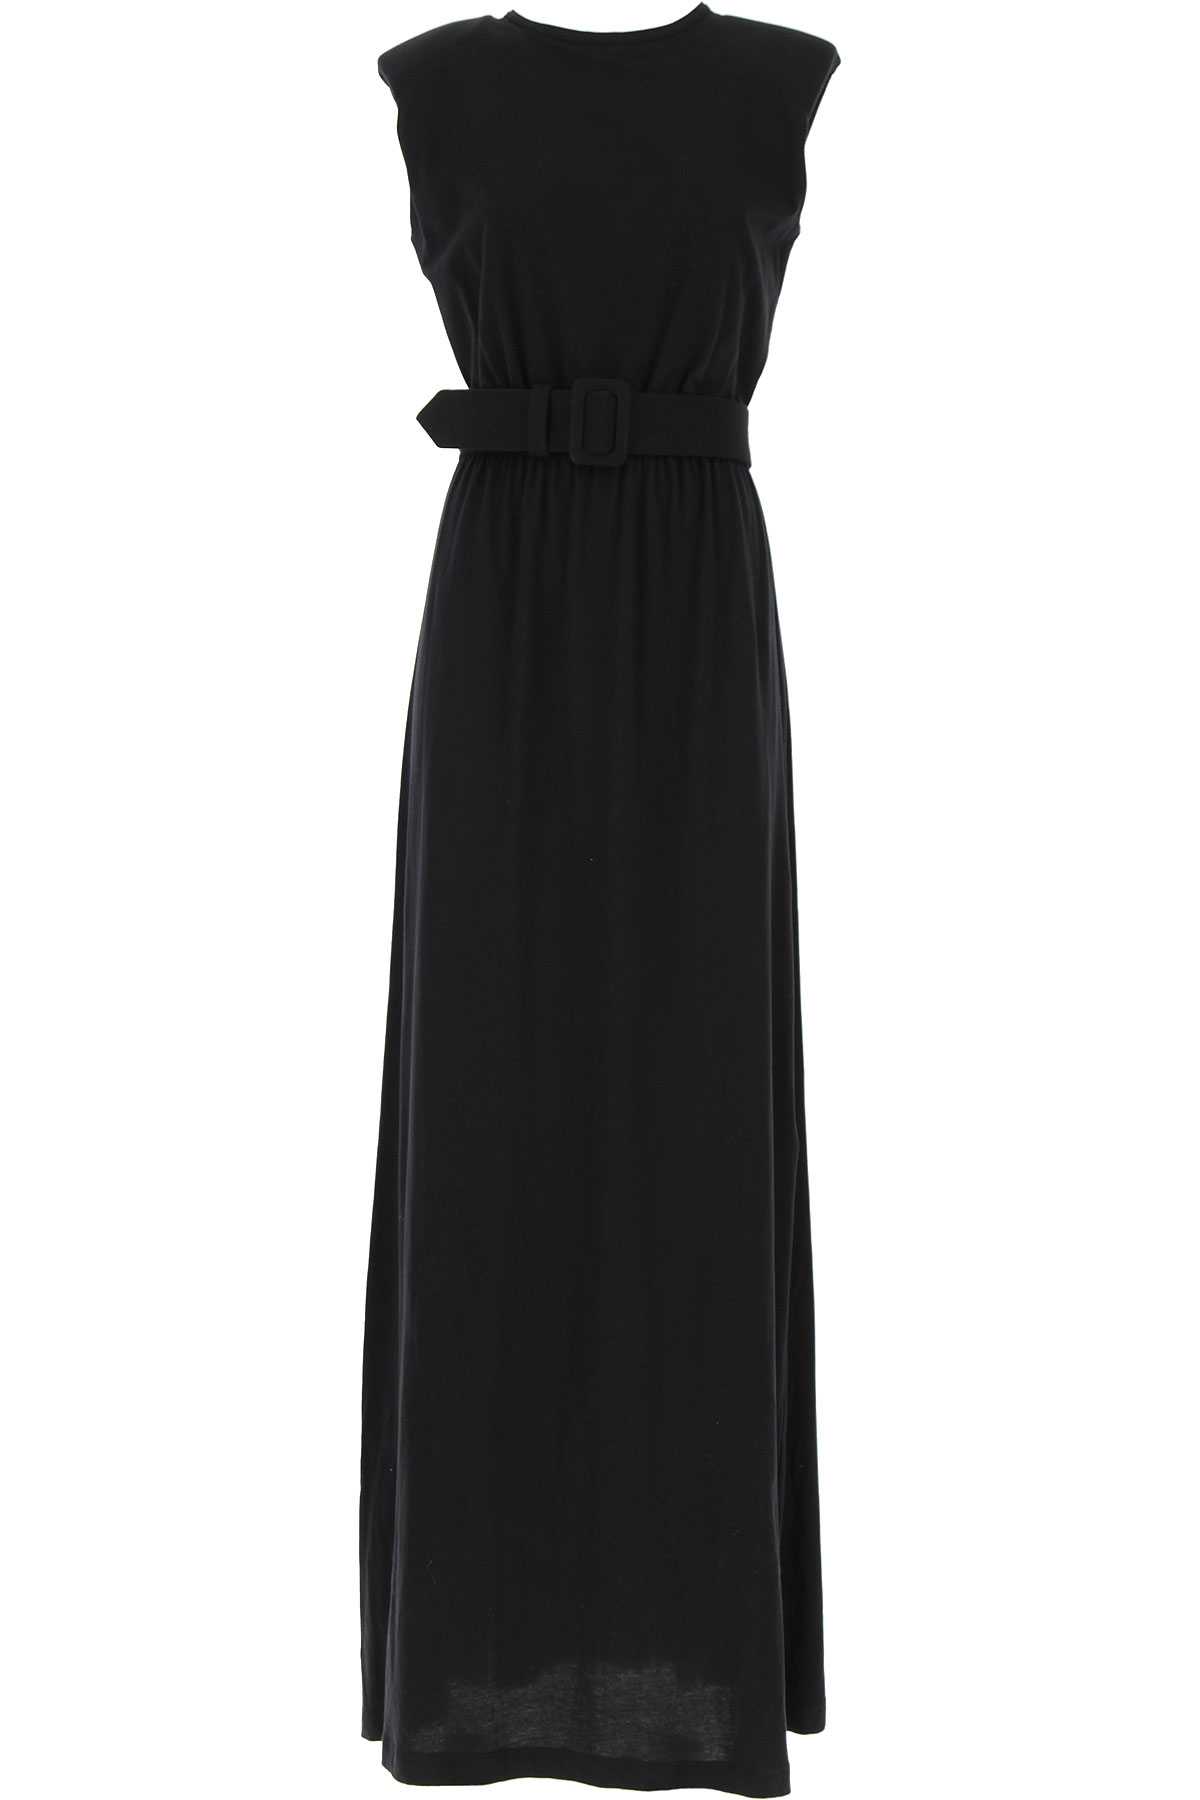 Federica Tosi Dress for Women, Evening Cocktail Party On Sale, Black, Cotton, 2019, 2 4 6 8